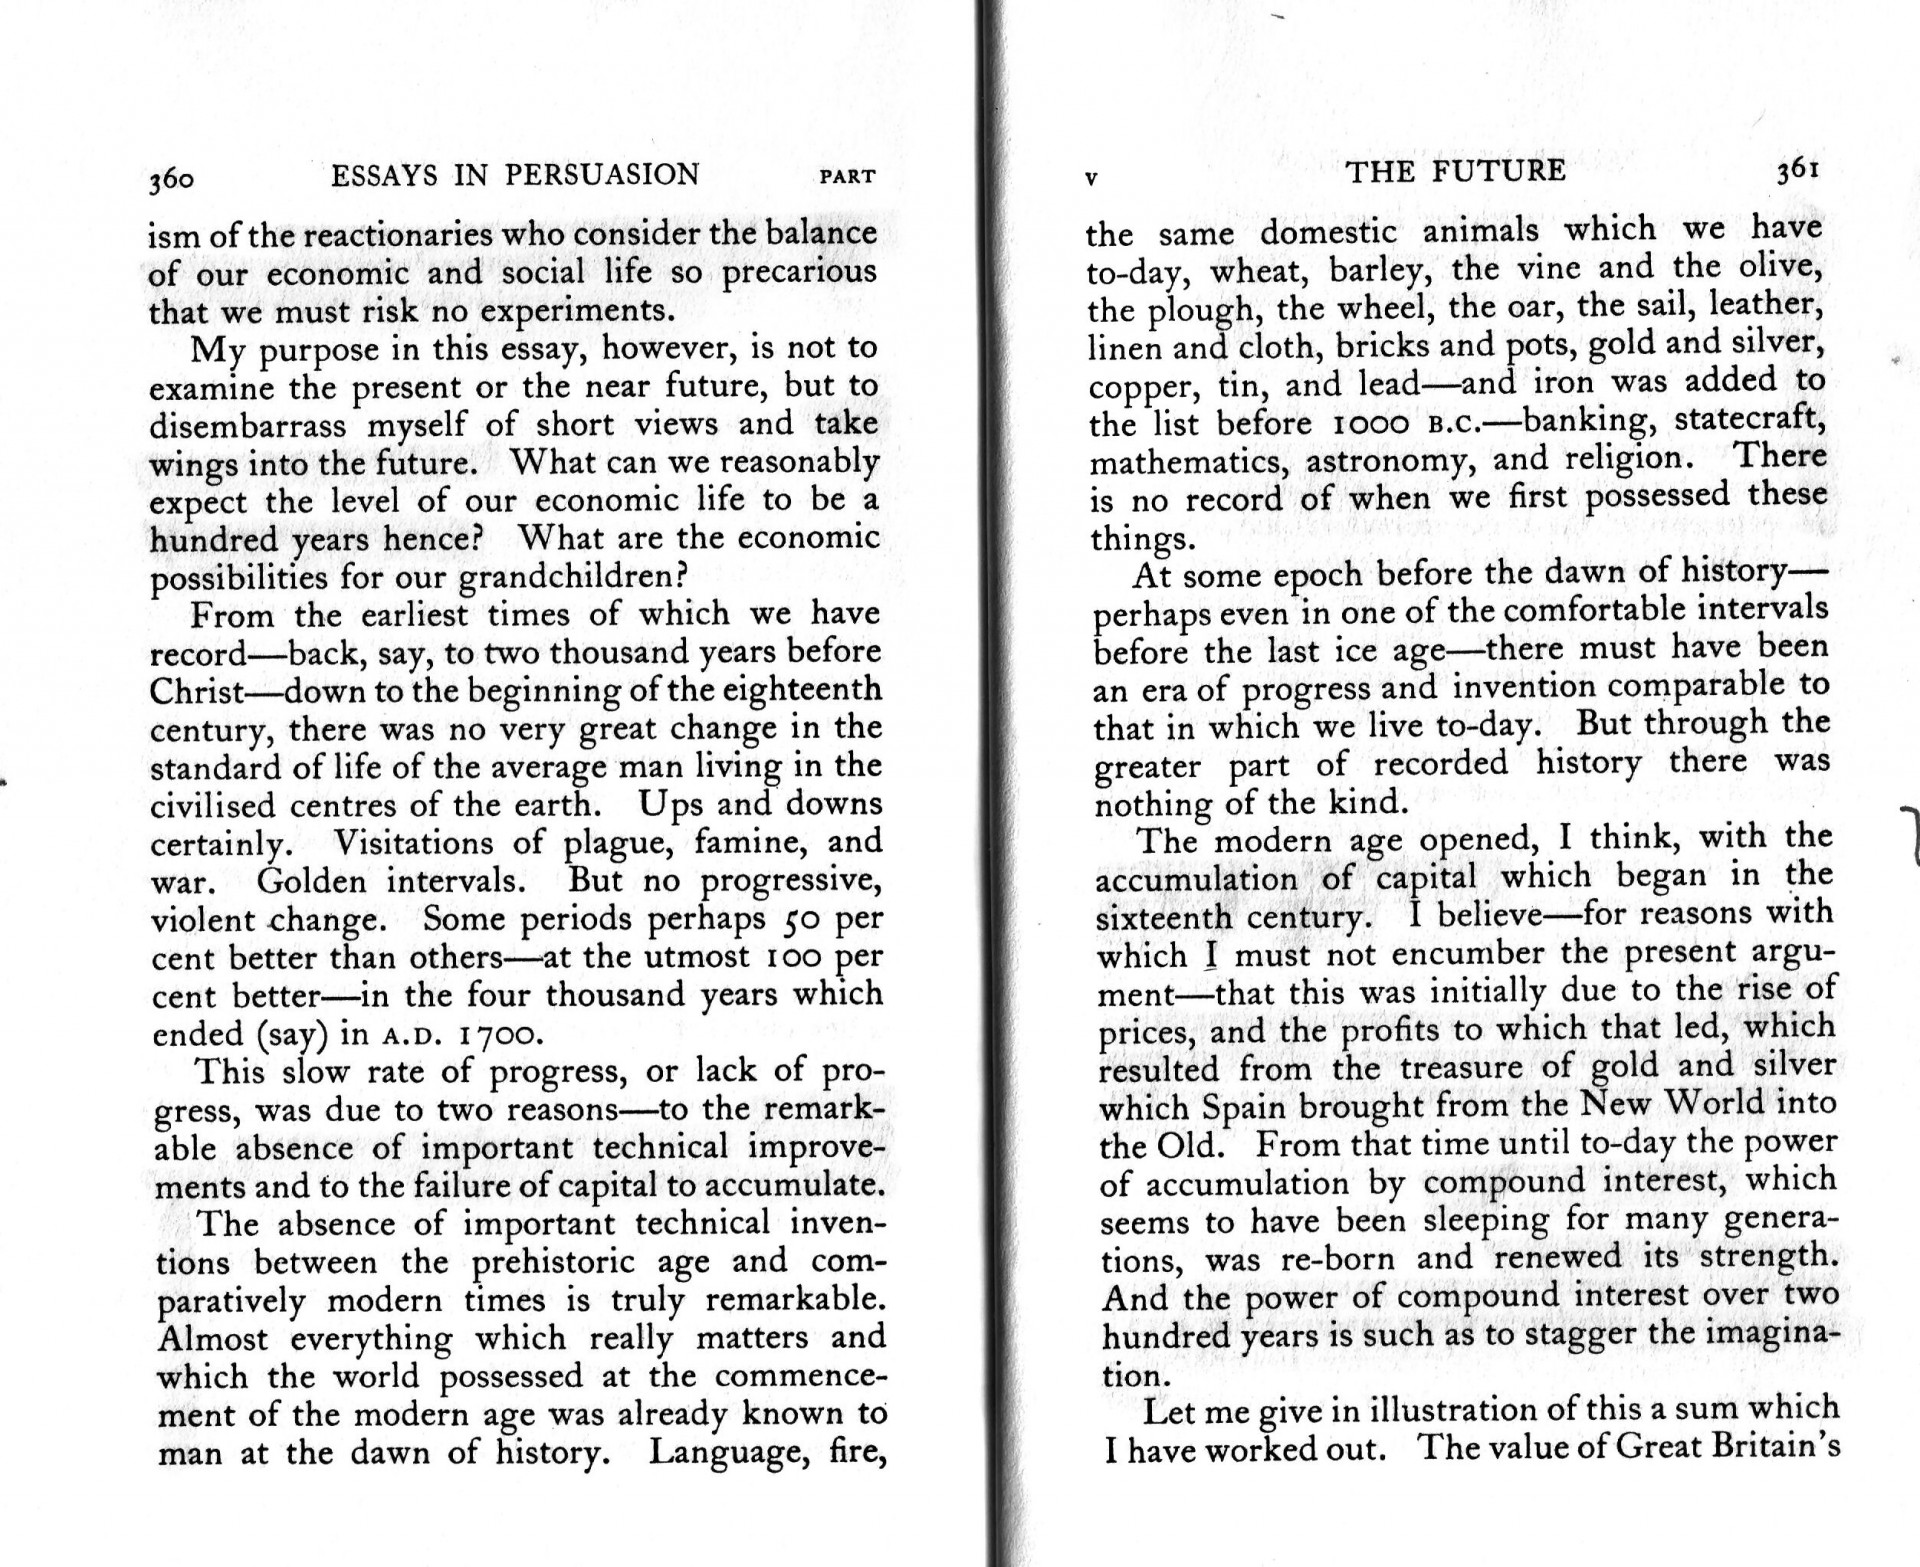 022 Essay Example Essays In Remarkable Persuasion Keynes 1931 Wikipedia Summary 1920